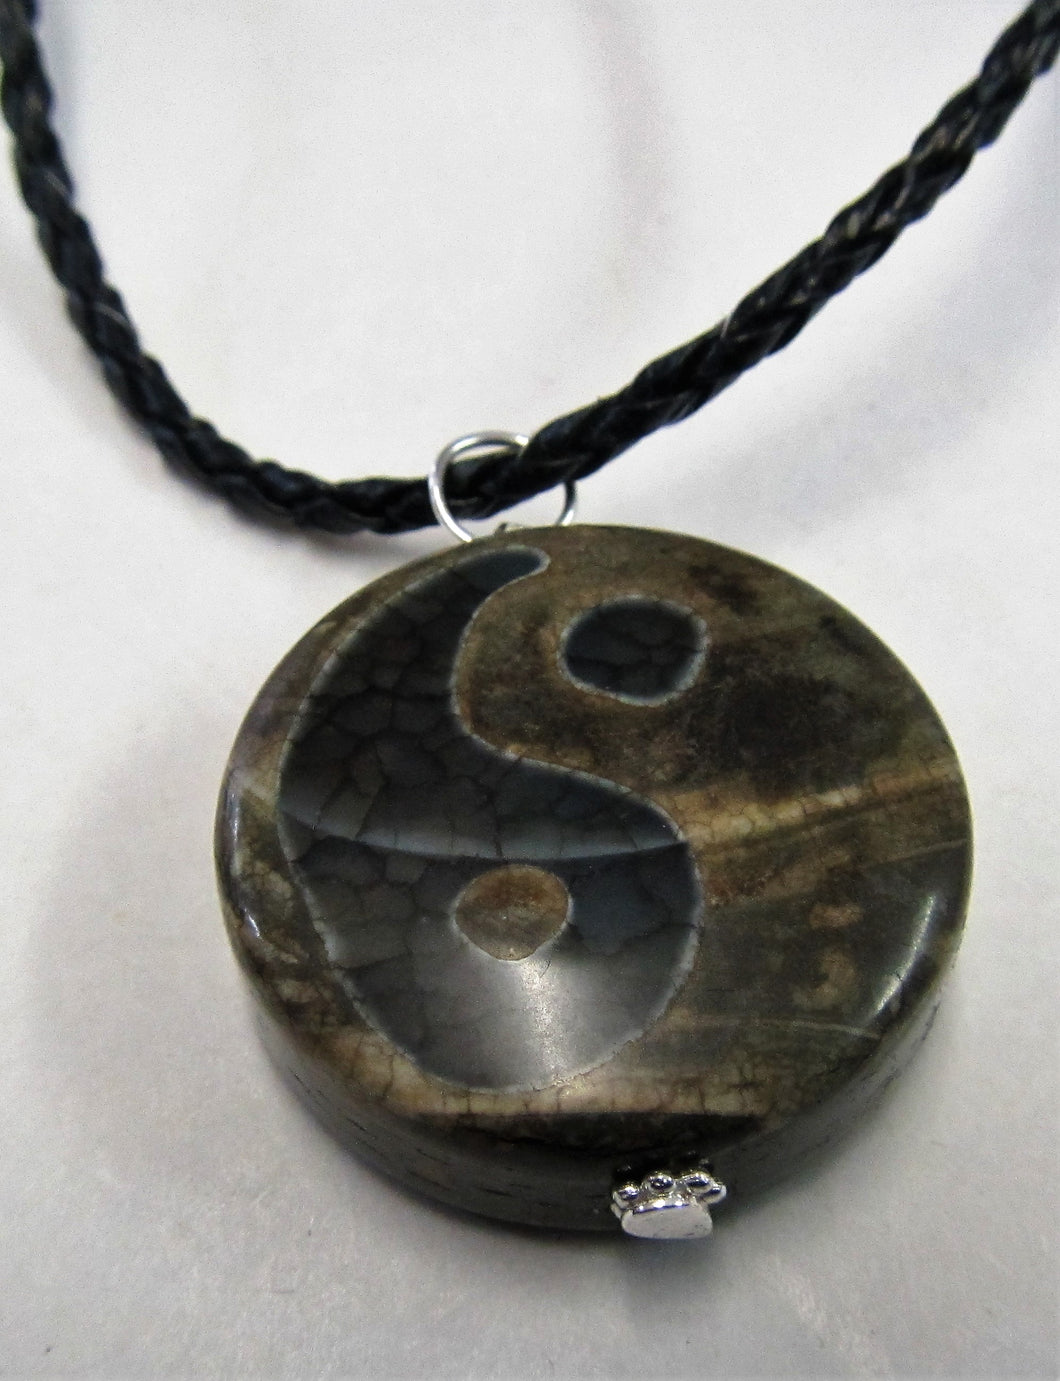 Handcrafted yin and yang agate pendant on leather necklace